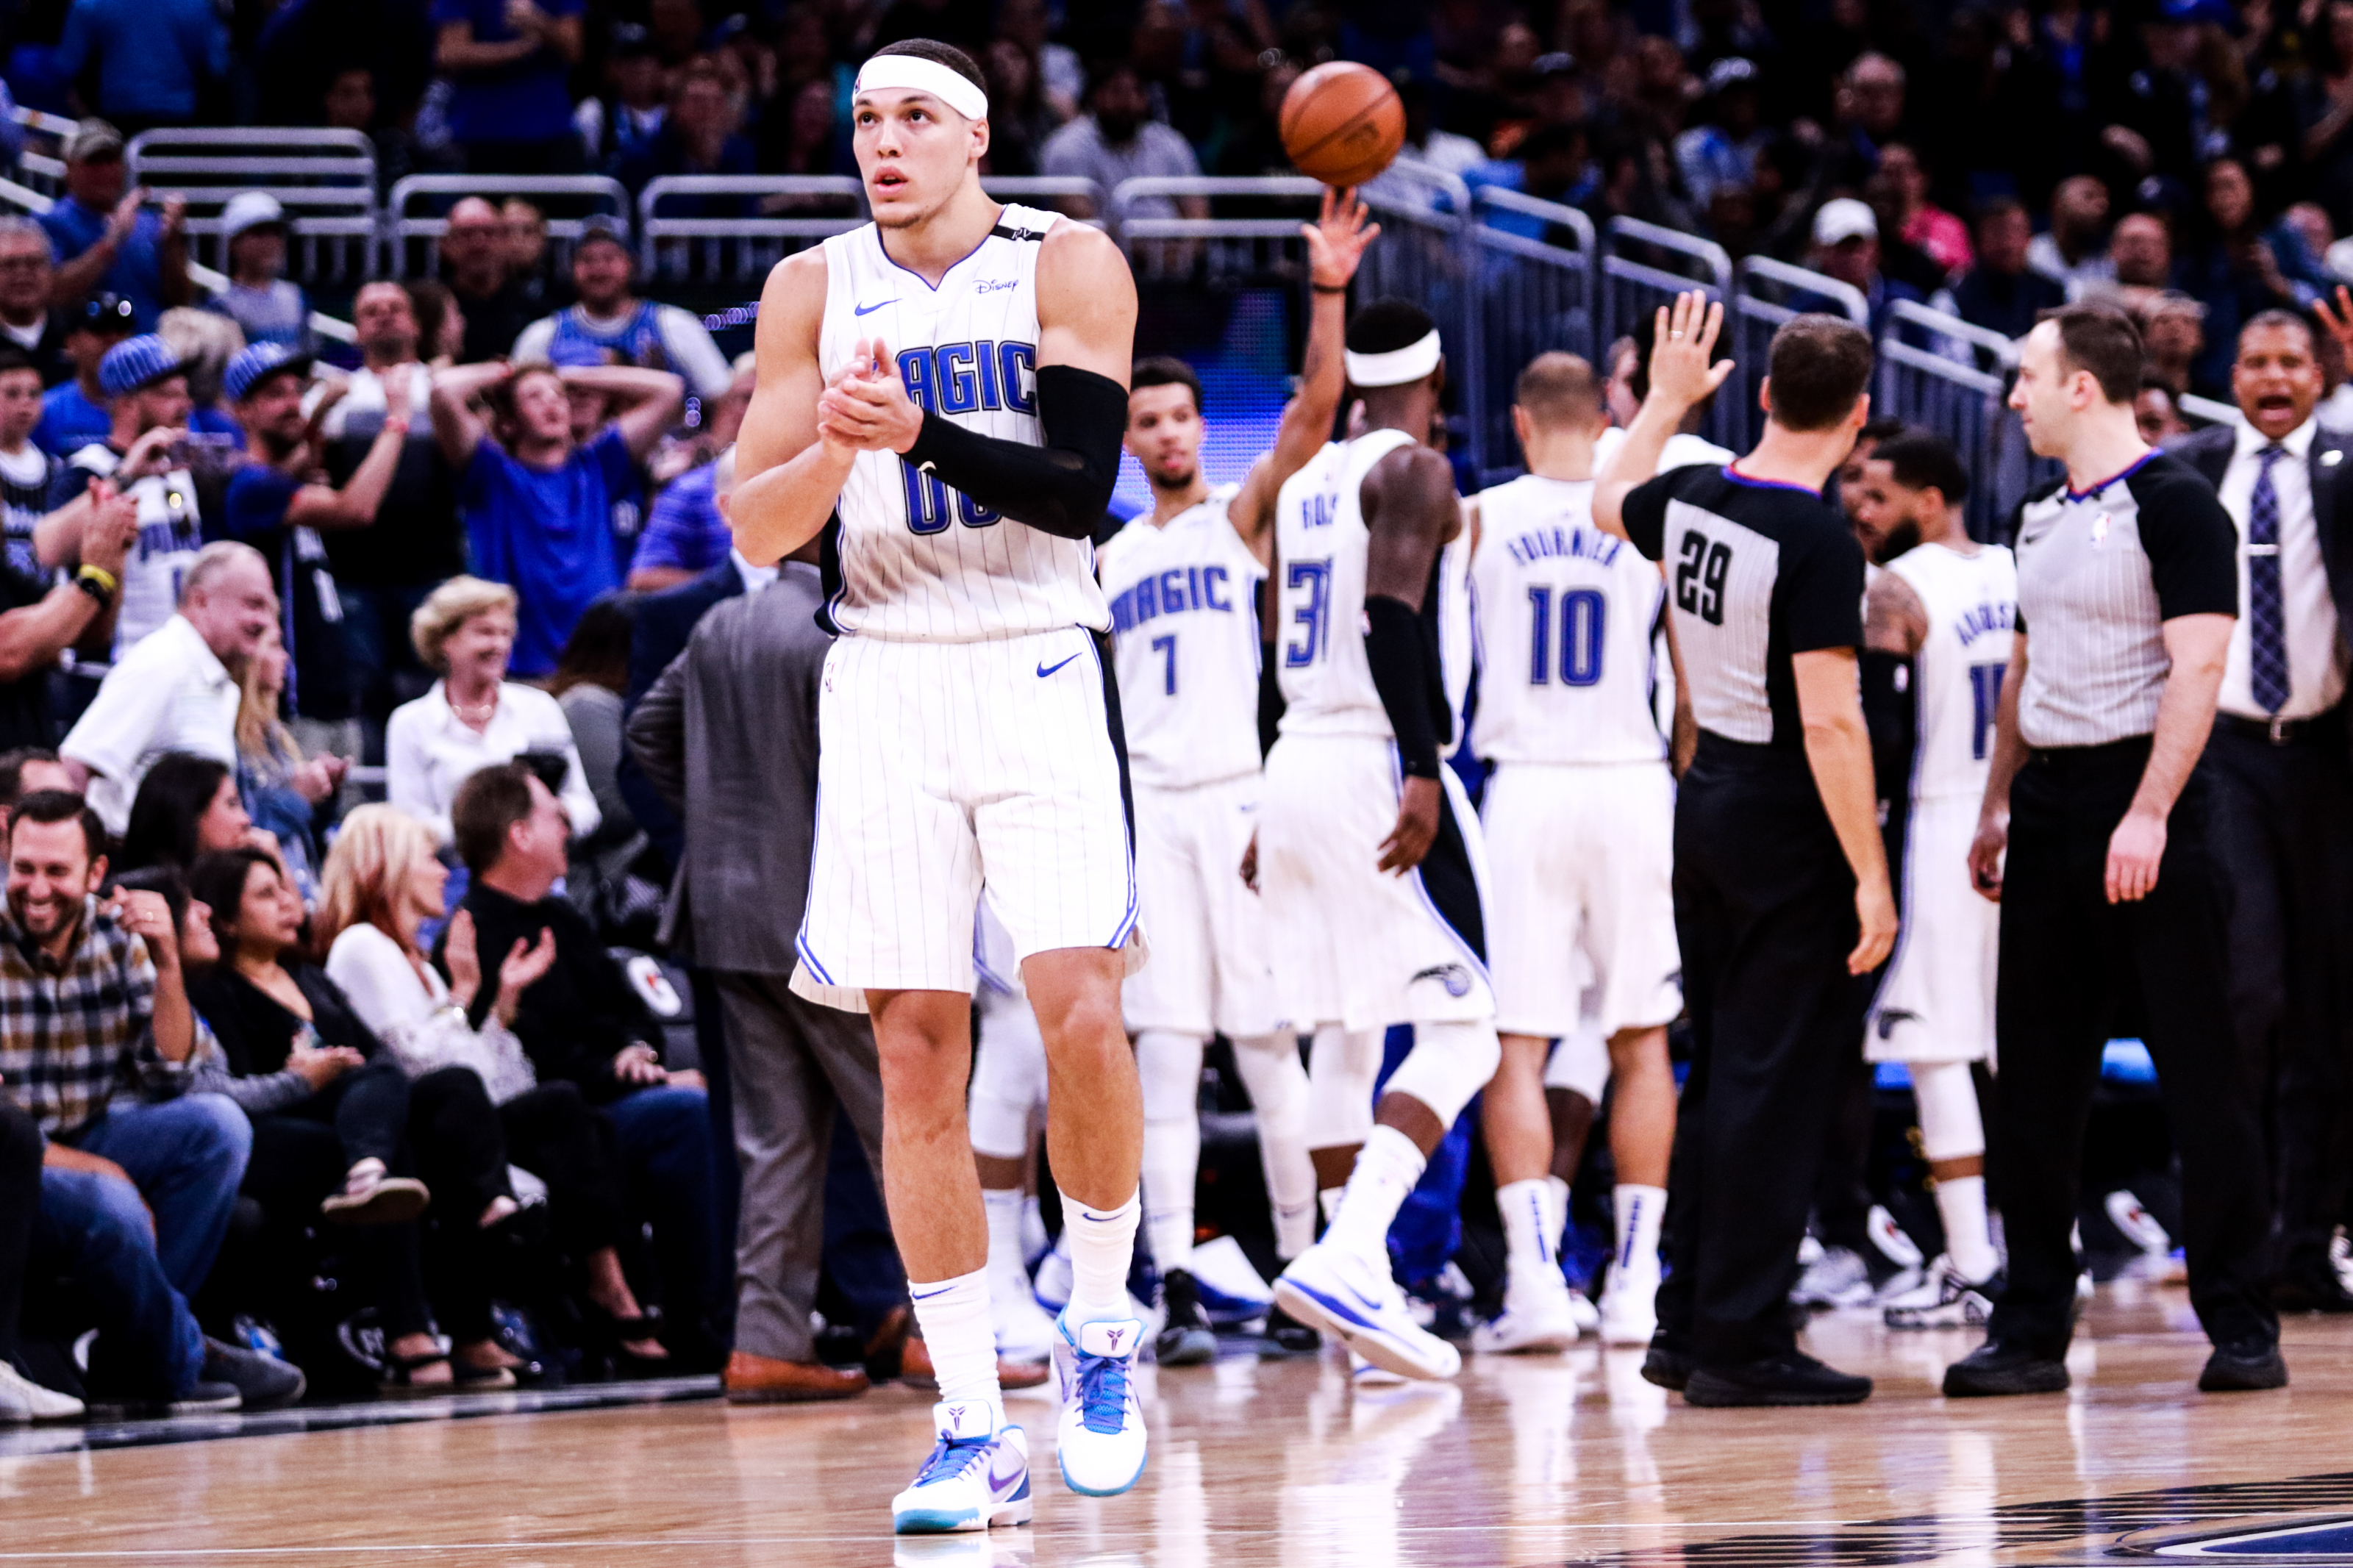 Nothing is the same as last year's run for Orlando Magic